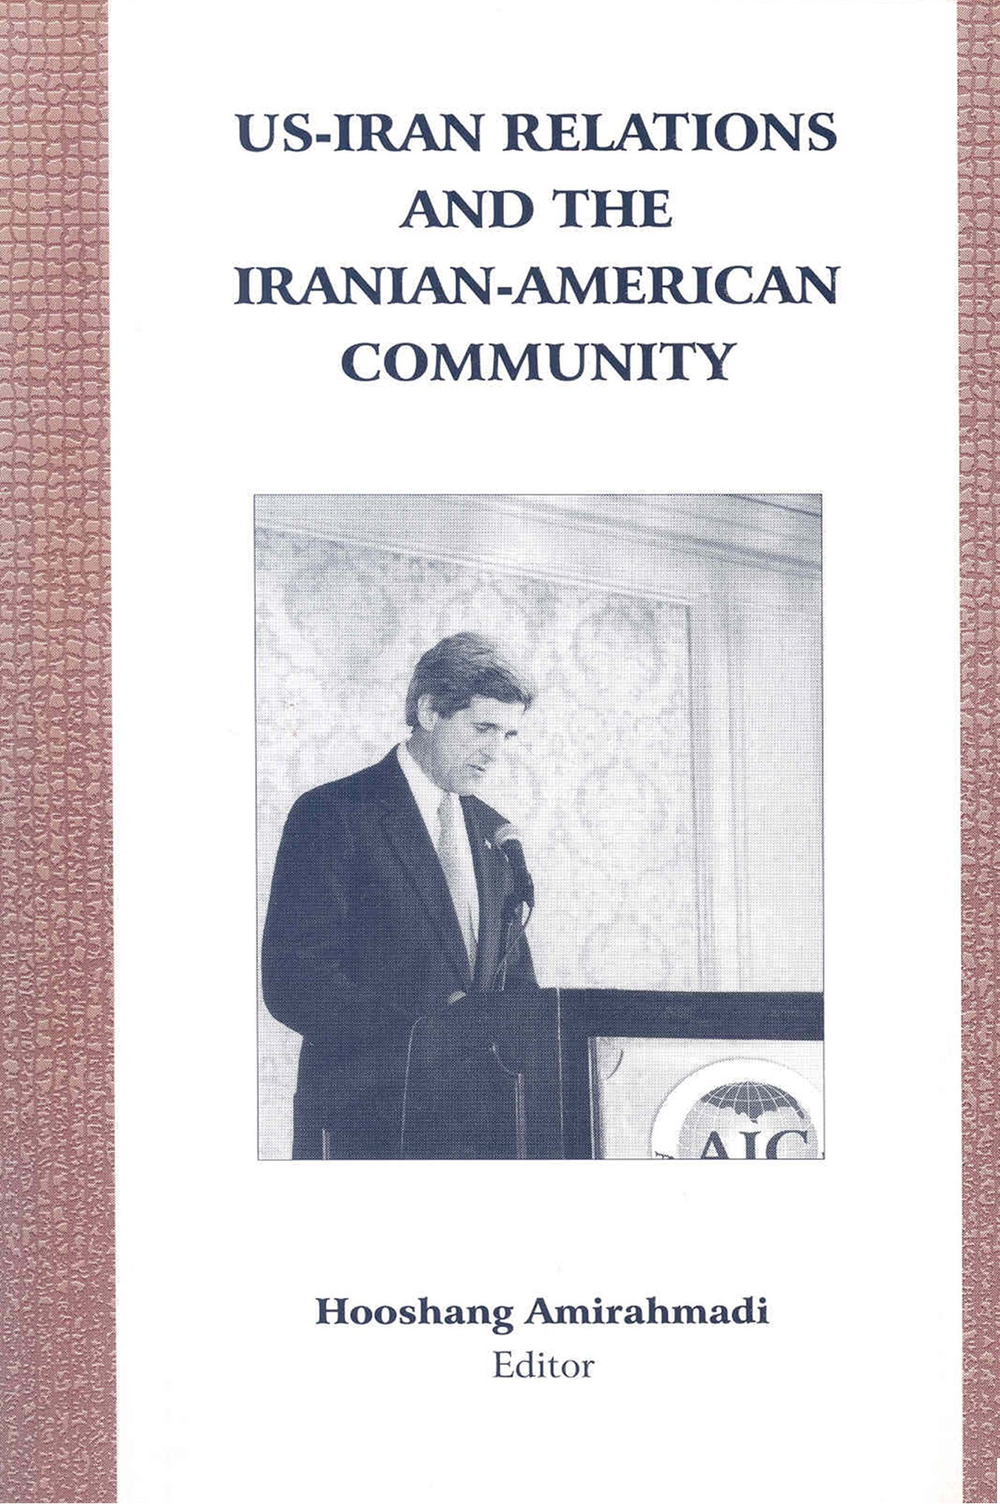 US-Iran Relations And The Iranian-American Community